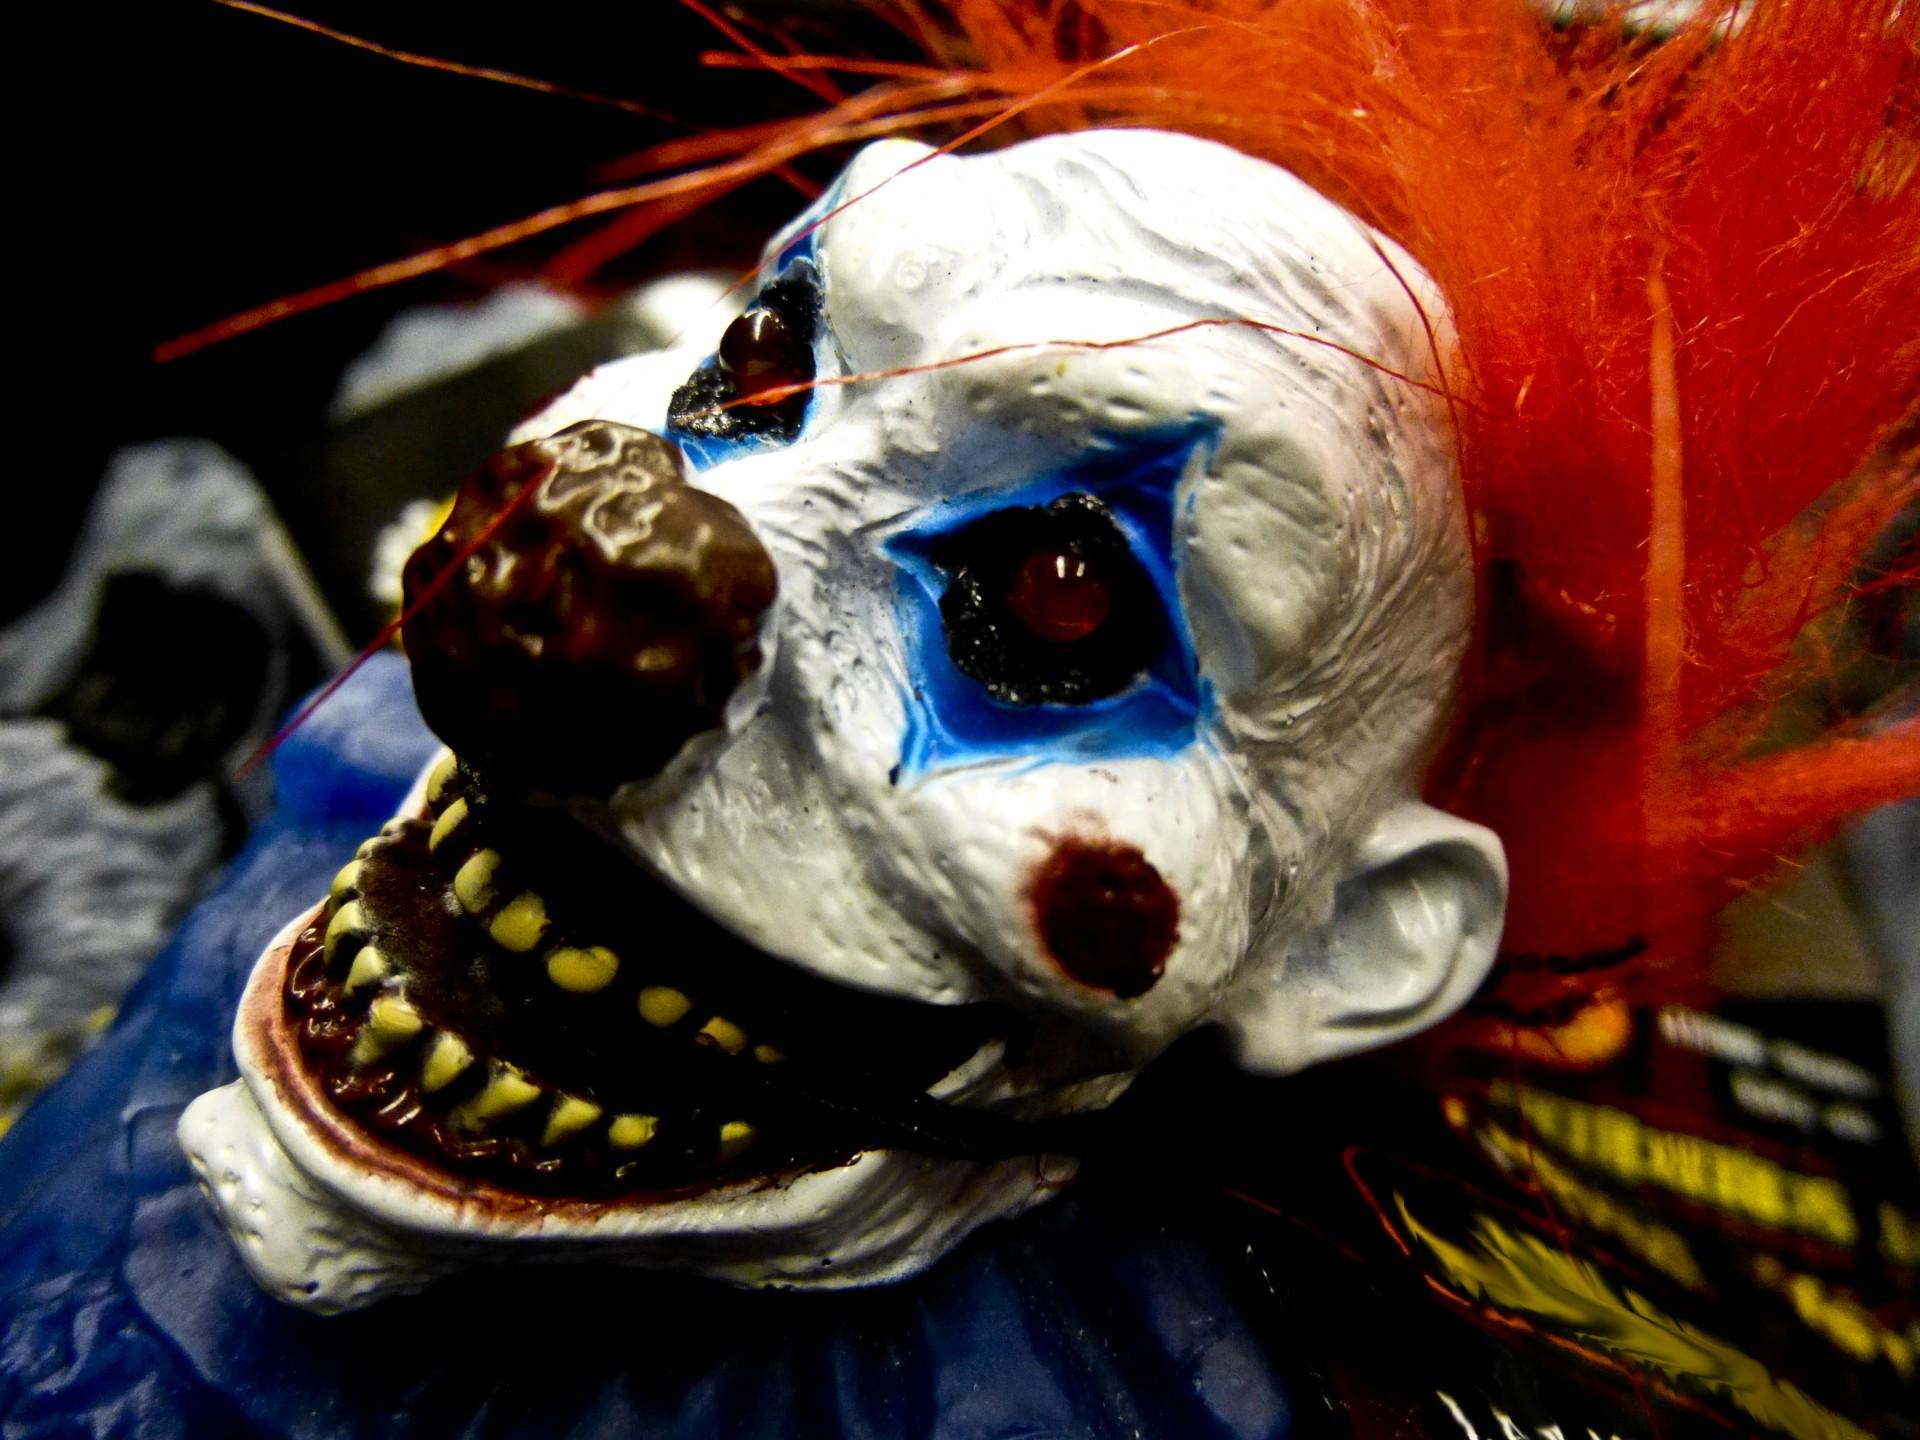 Sightings of creepy clowns have been reported nationwide and has been spreading as Halloween nears.